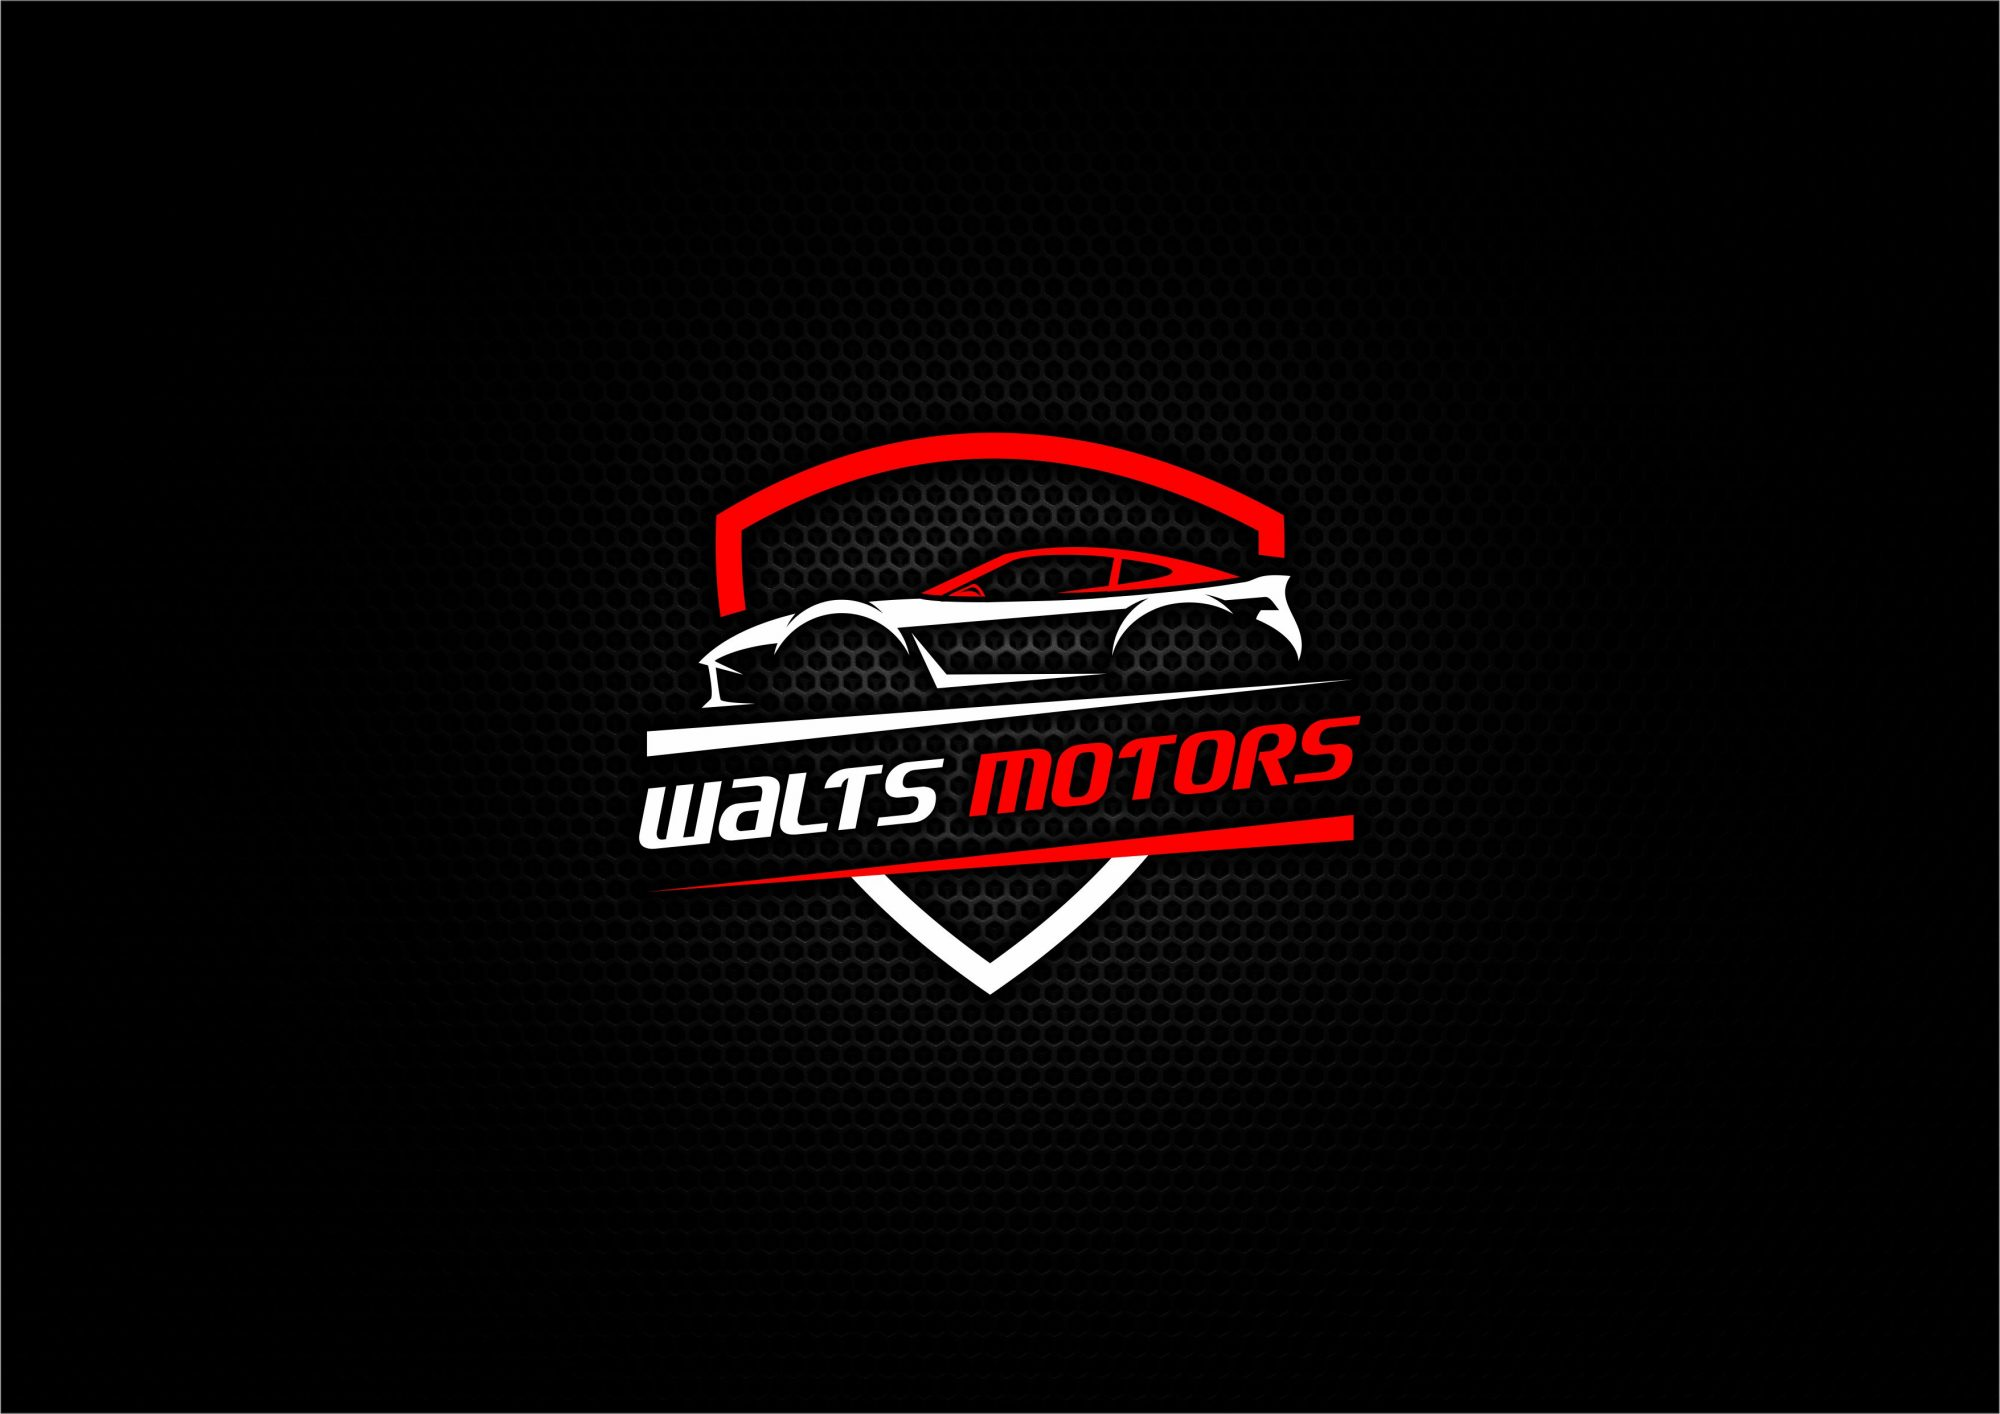 Walts Motors